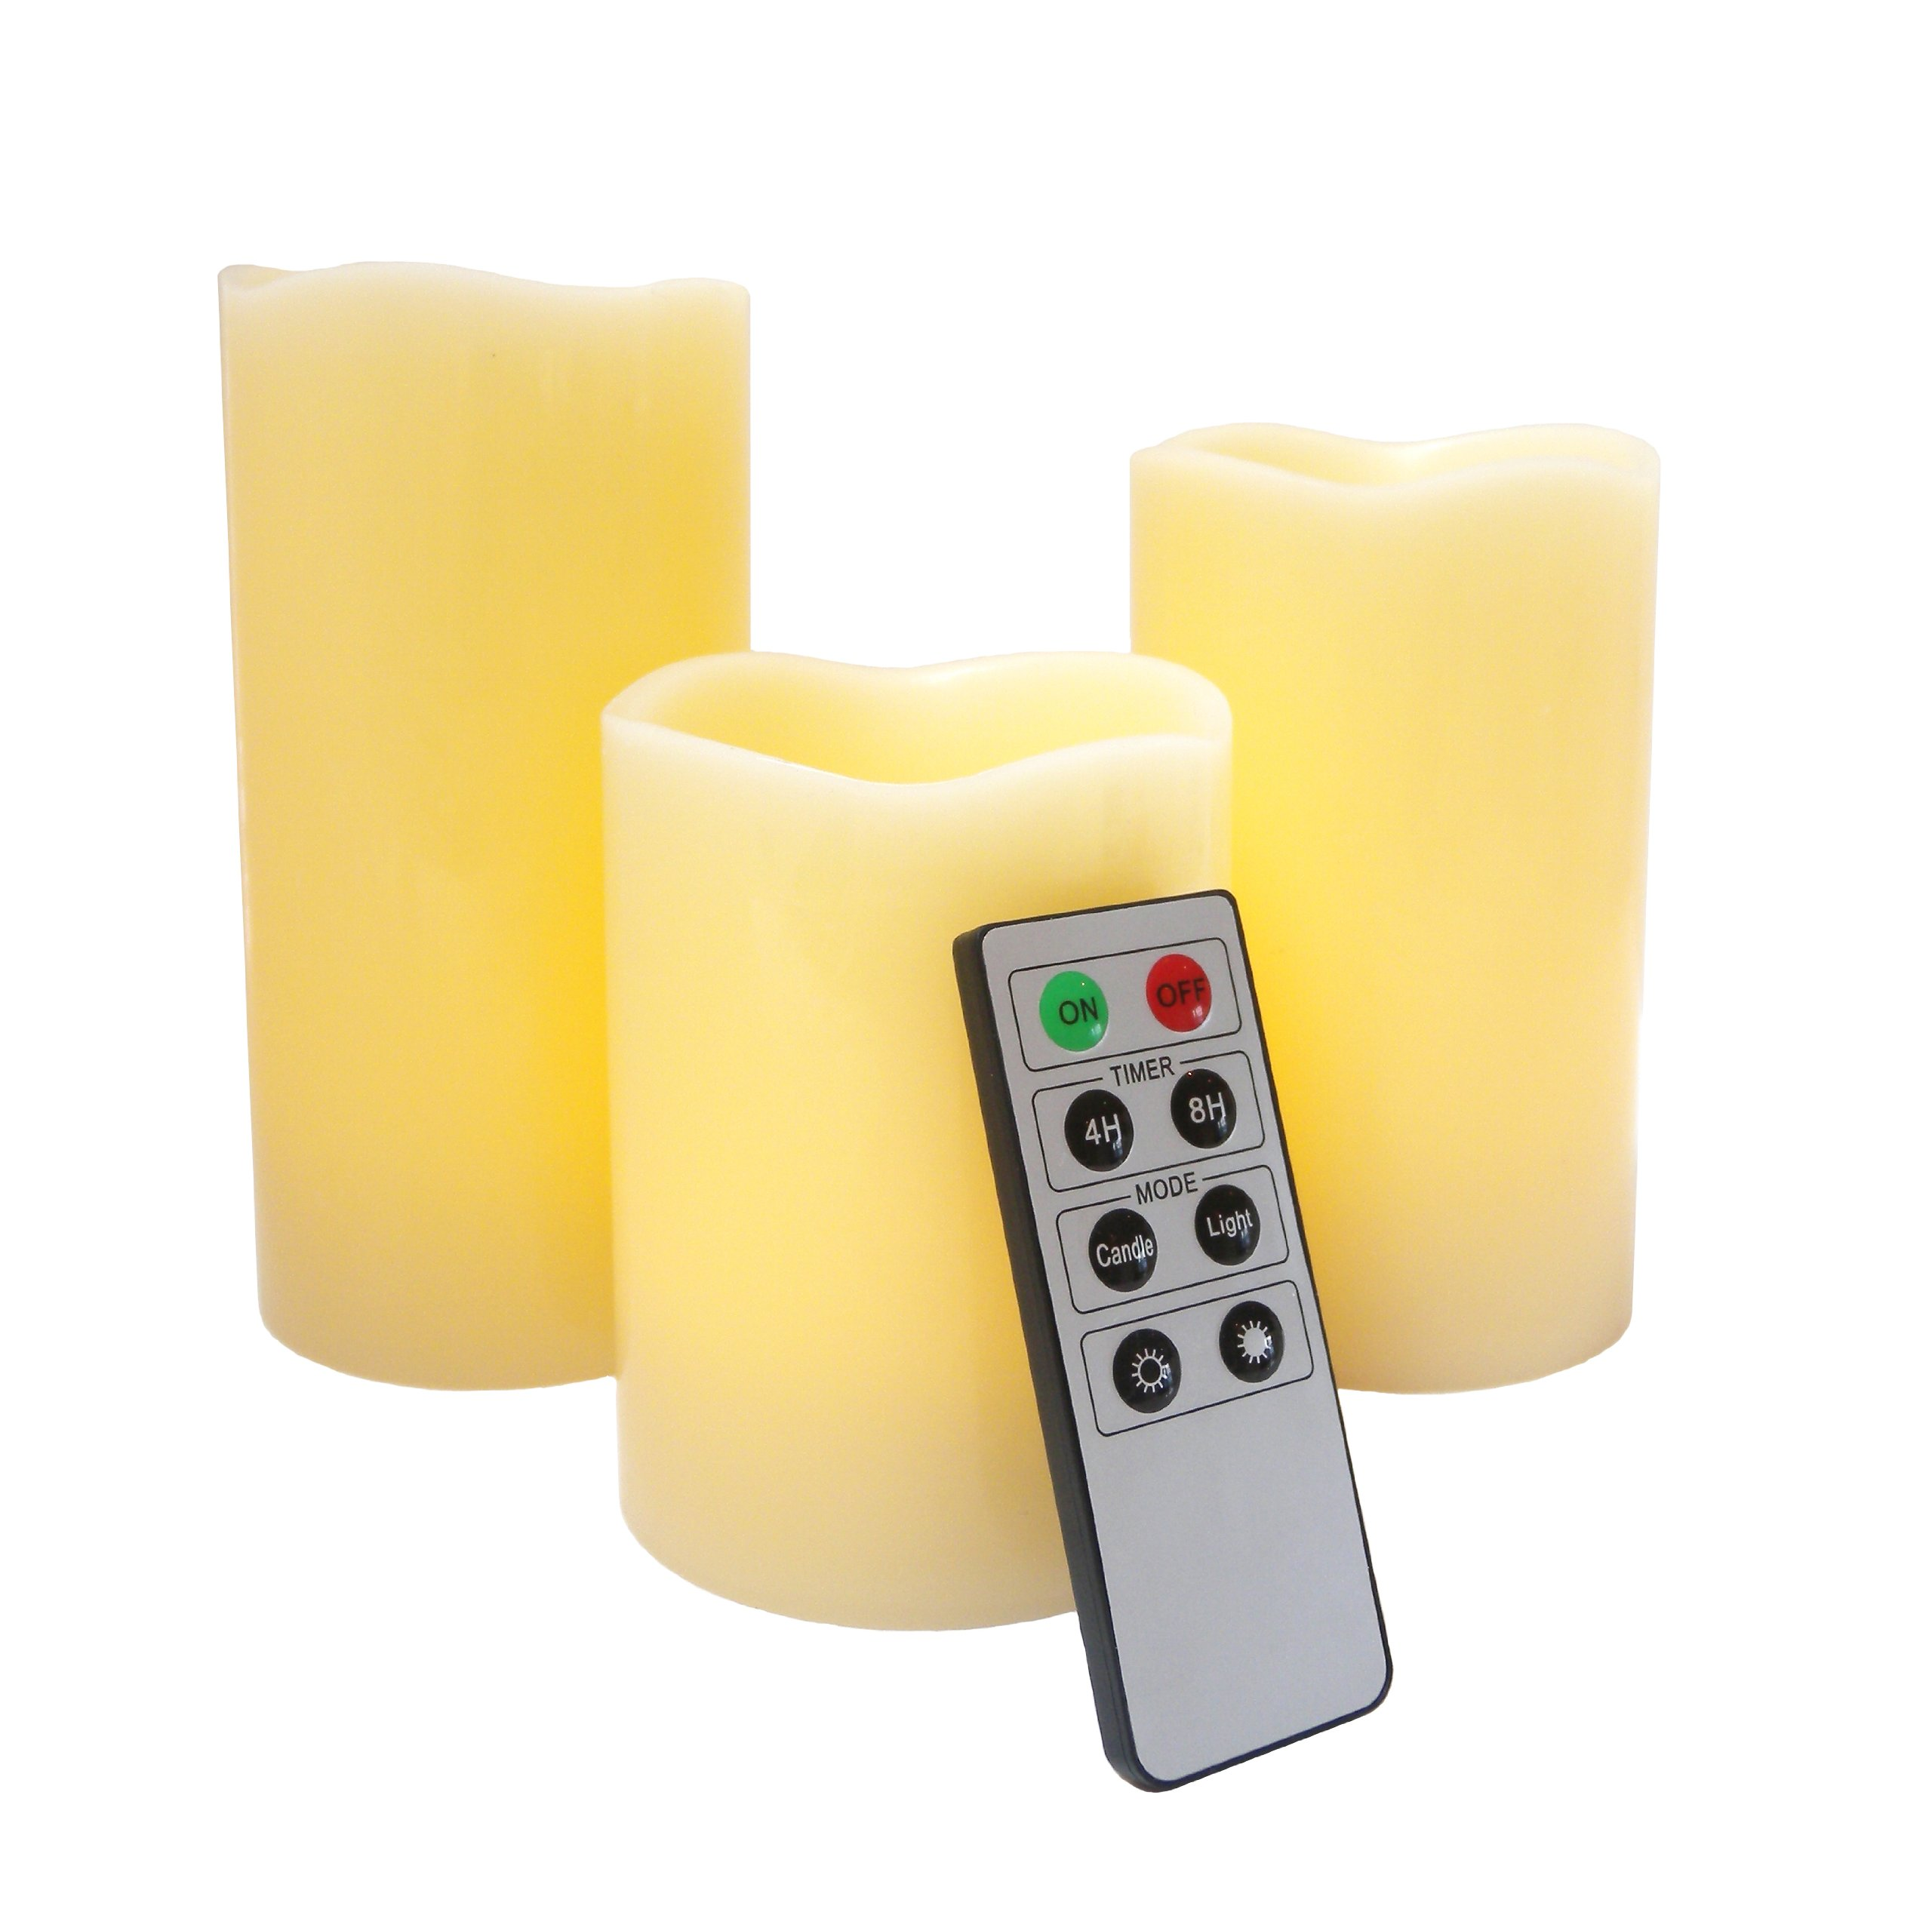 Flameless LED Candles - 3 Mooncandles with Remote Control by FRF